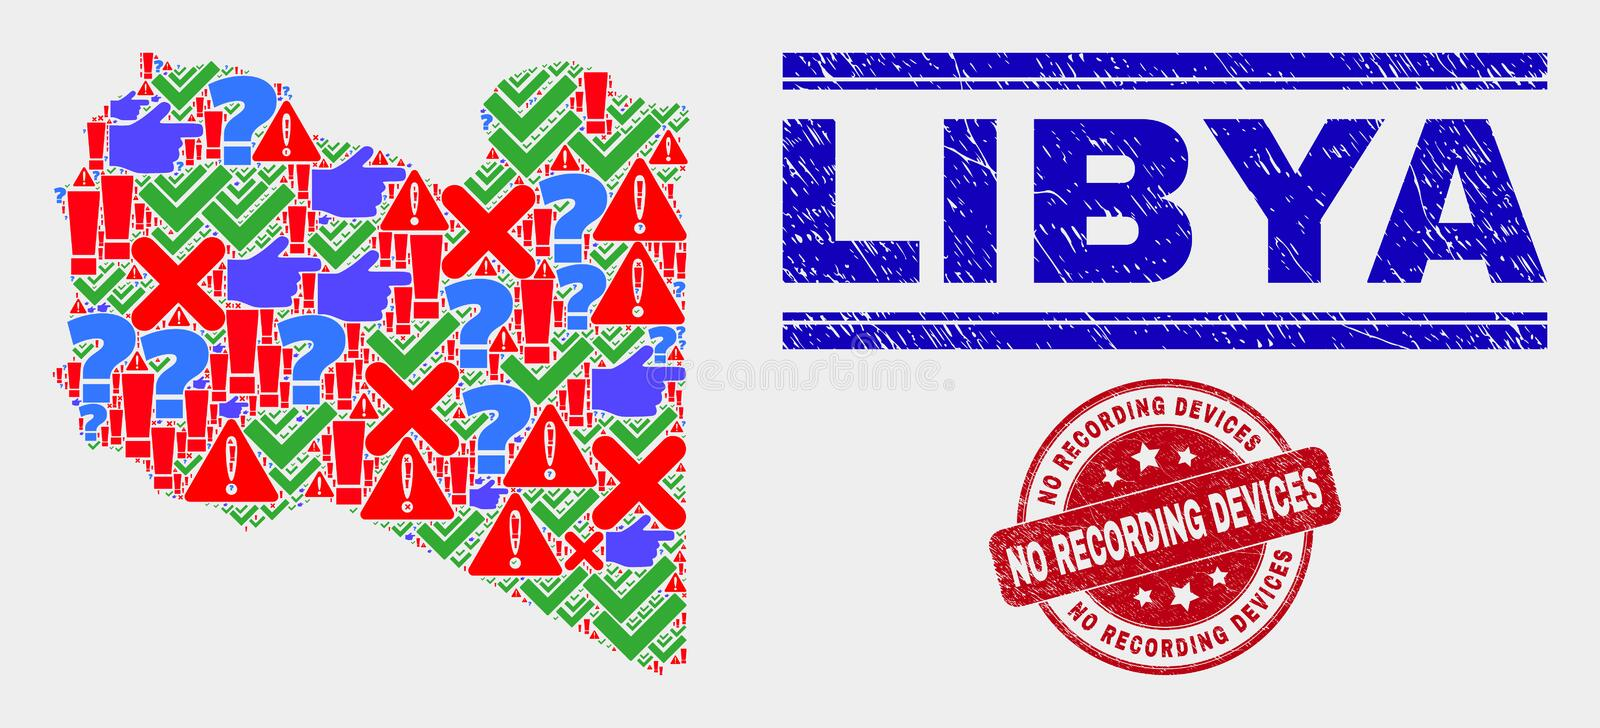 Composition of Libya Map Sign Mosaic and Distress No Recording Devices Watermark. Symbolic Mosaic Libya map and seal stamps. Red rounded No Recording Devices stock illustration